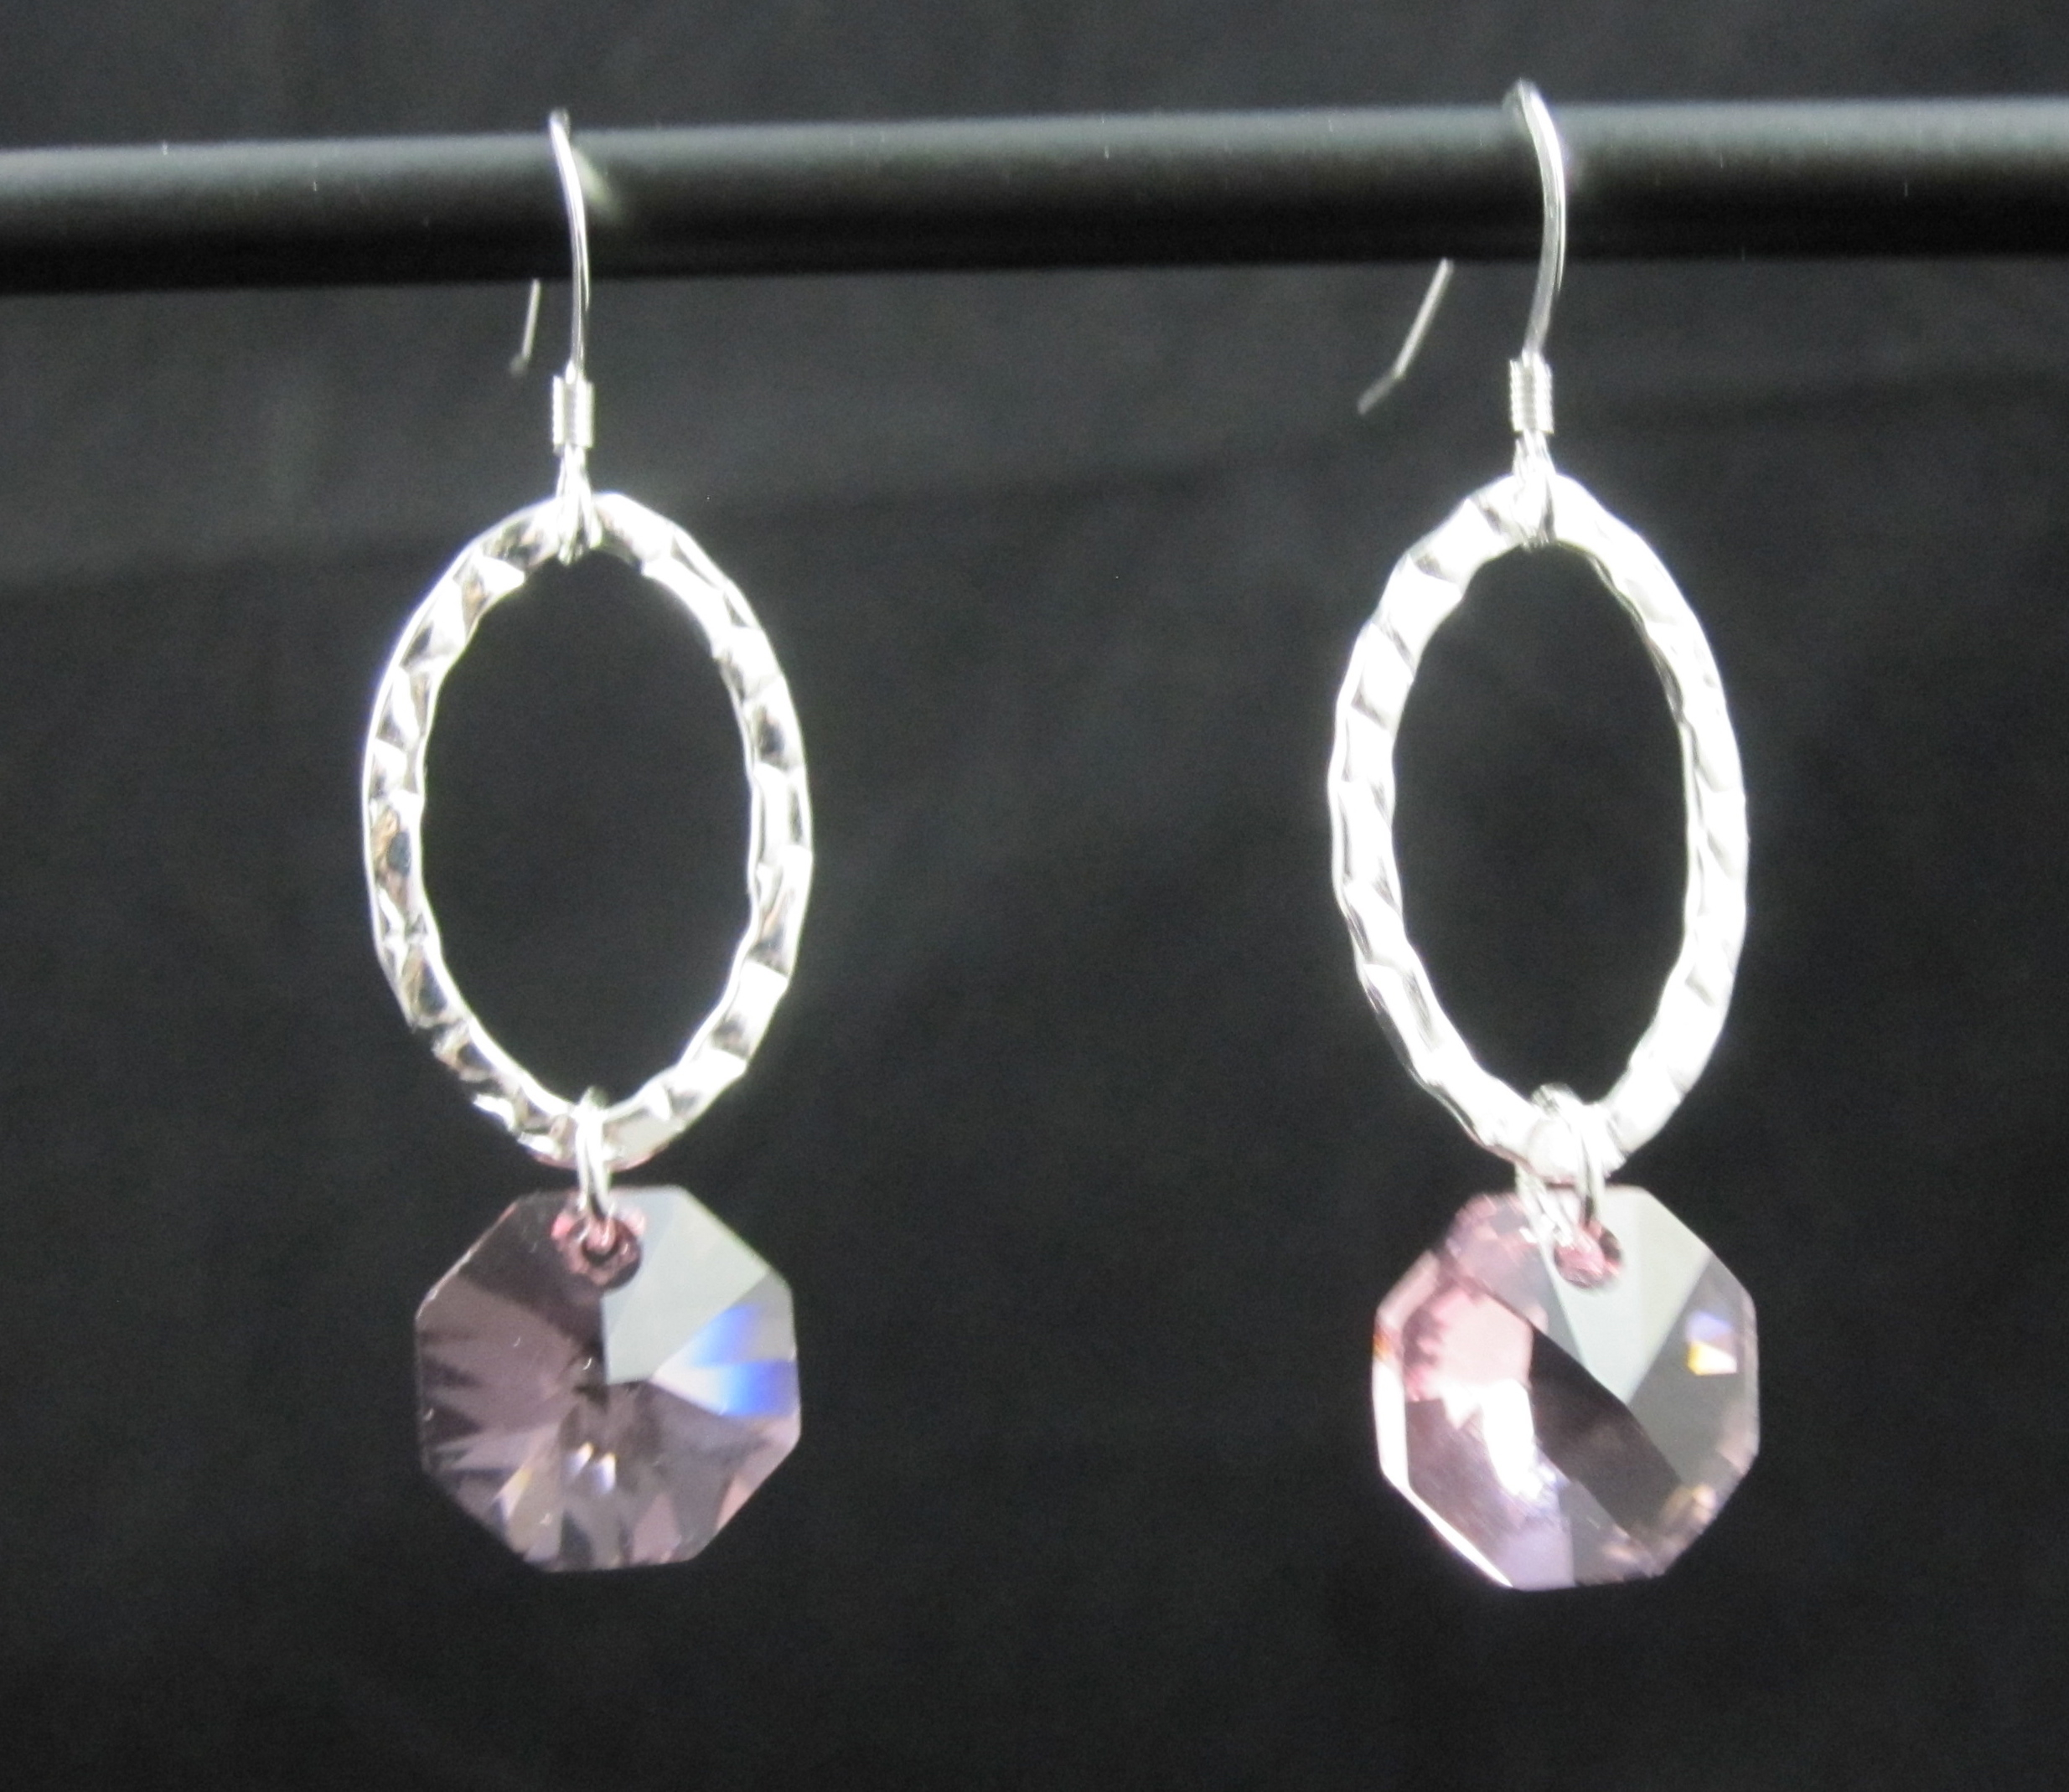 960fcd9ffa329 E110SS-C - Sterling Silver oval & Swarovski Crystal Earrings - 2 color  choices from Cassamore Jewellery